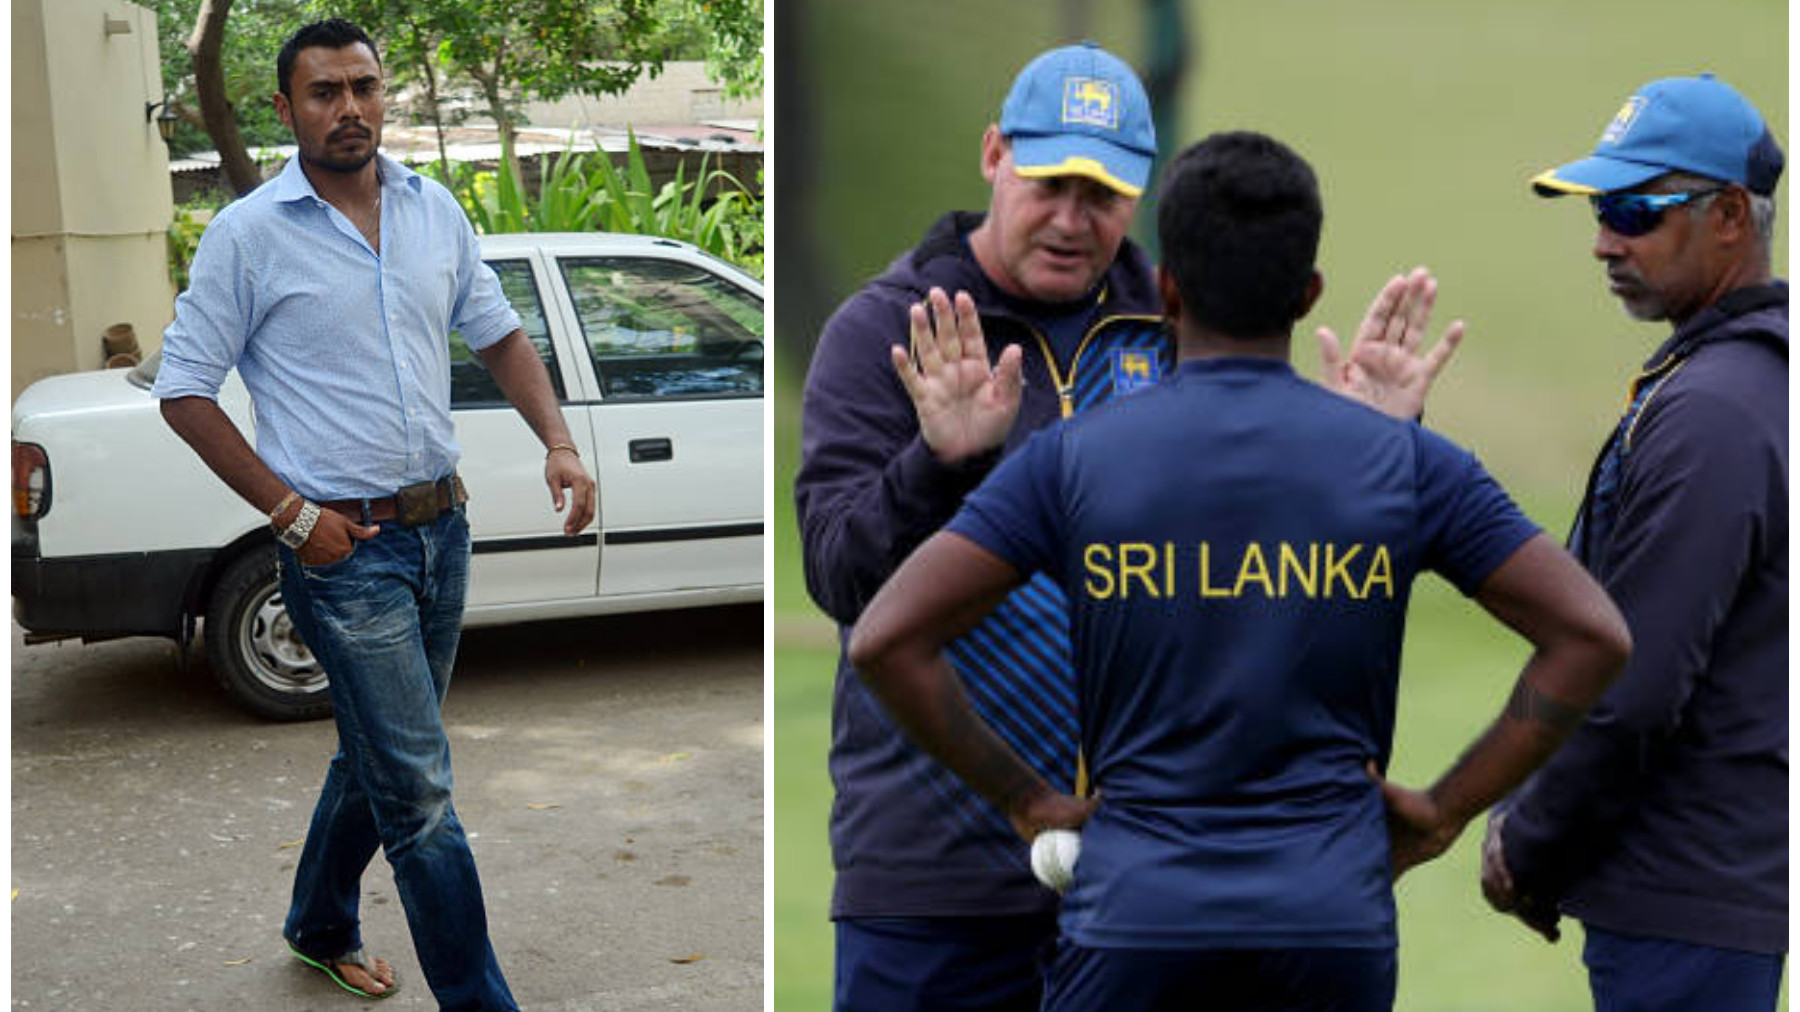 SL v IND 2021: Whichever team he has coached, its performance has declined: Kaneria slams Arthur